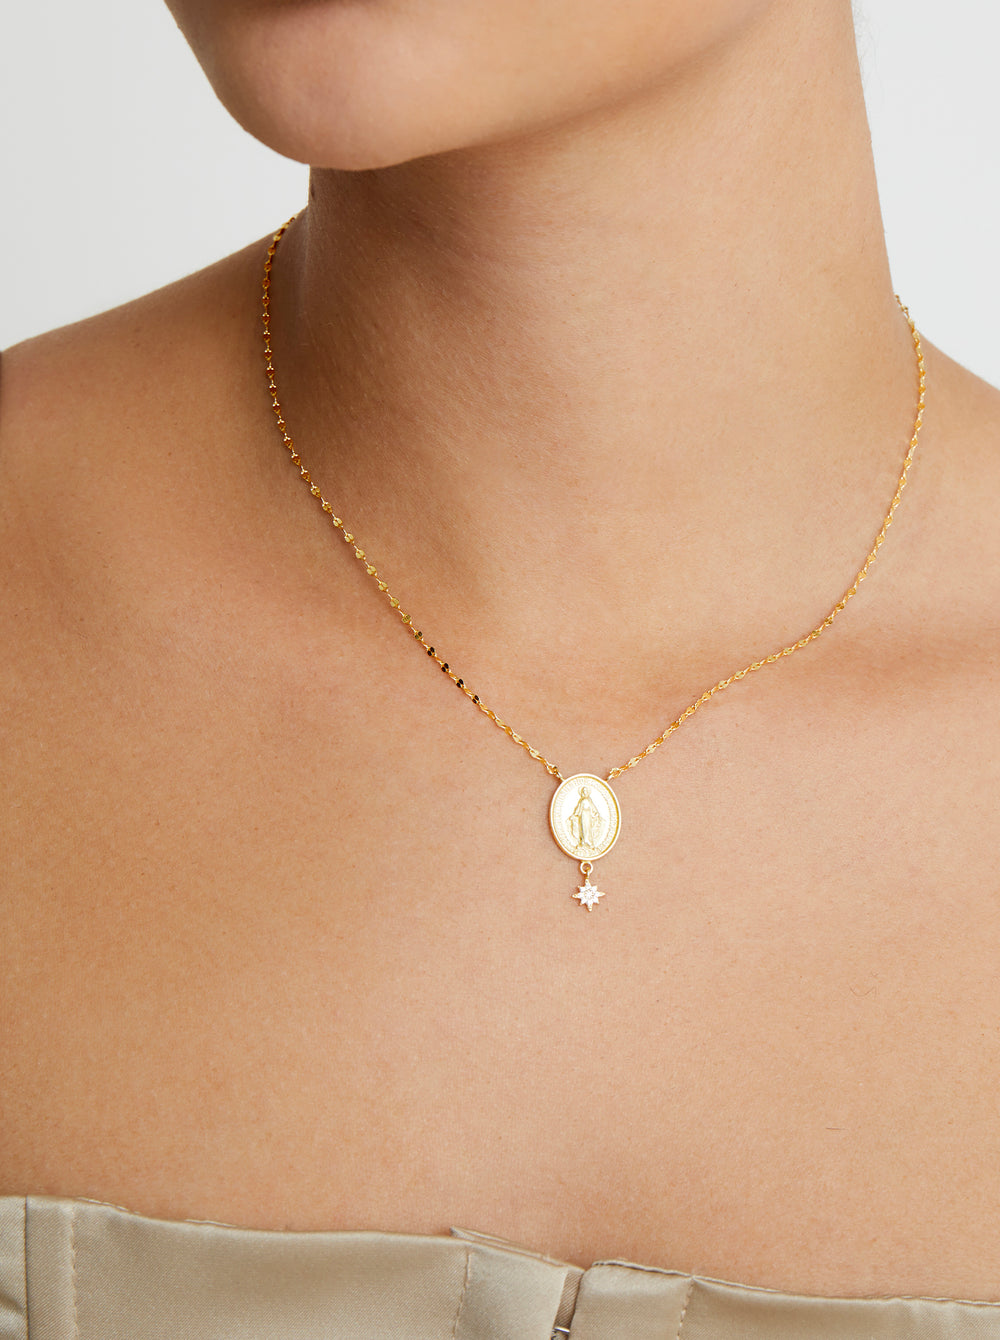 THE STAR MARY DROP PENDANT NECKLACE